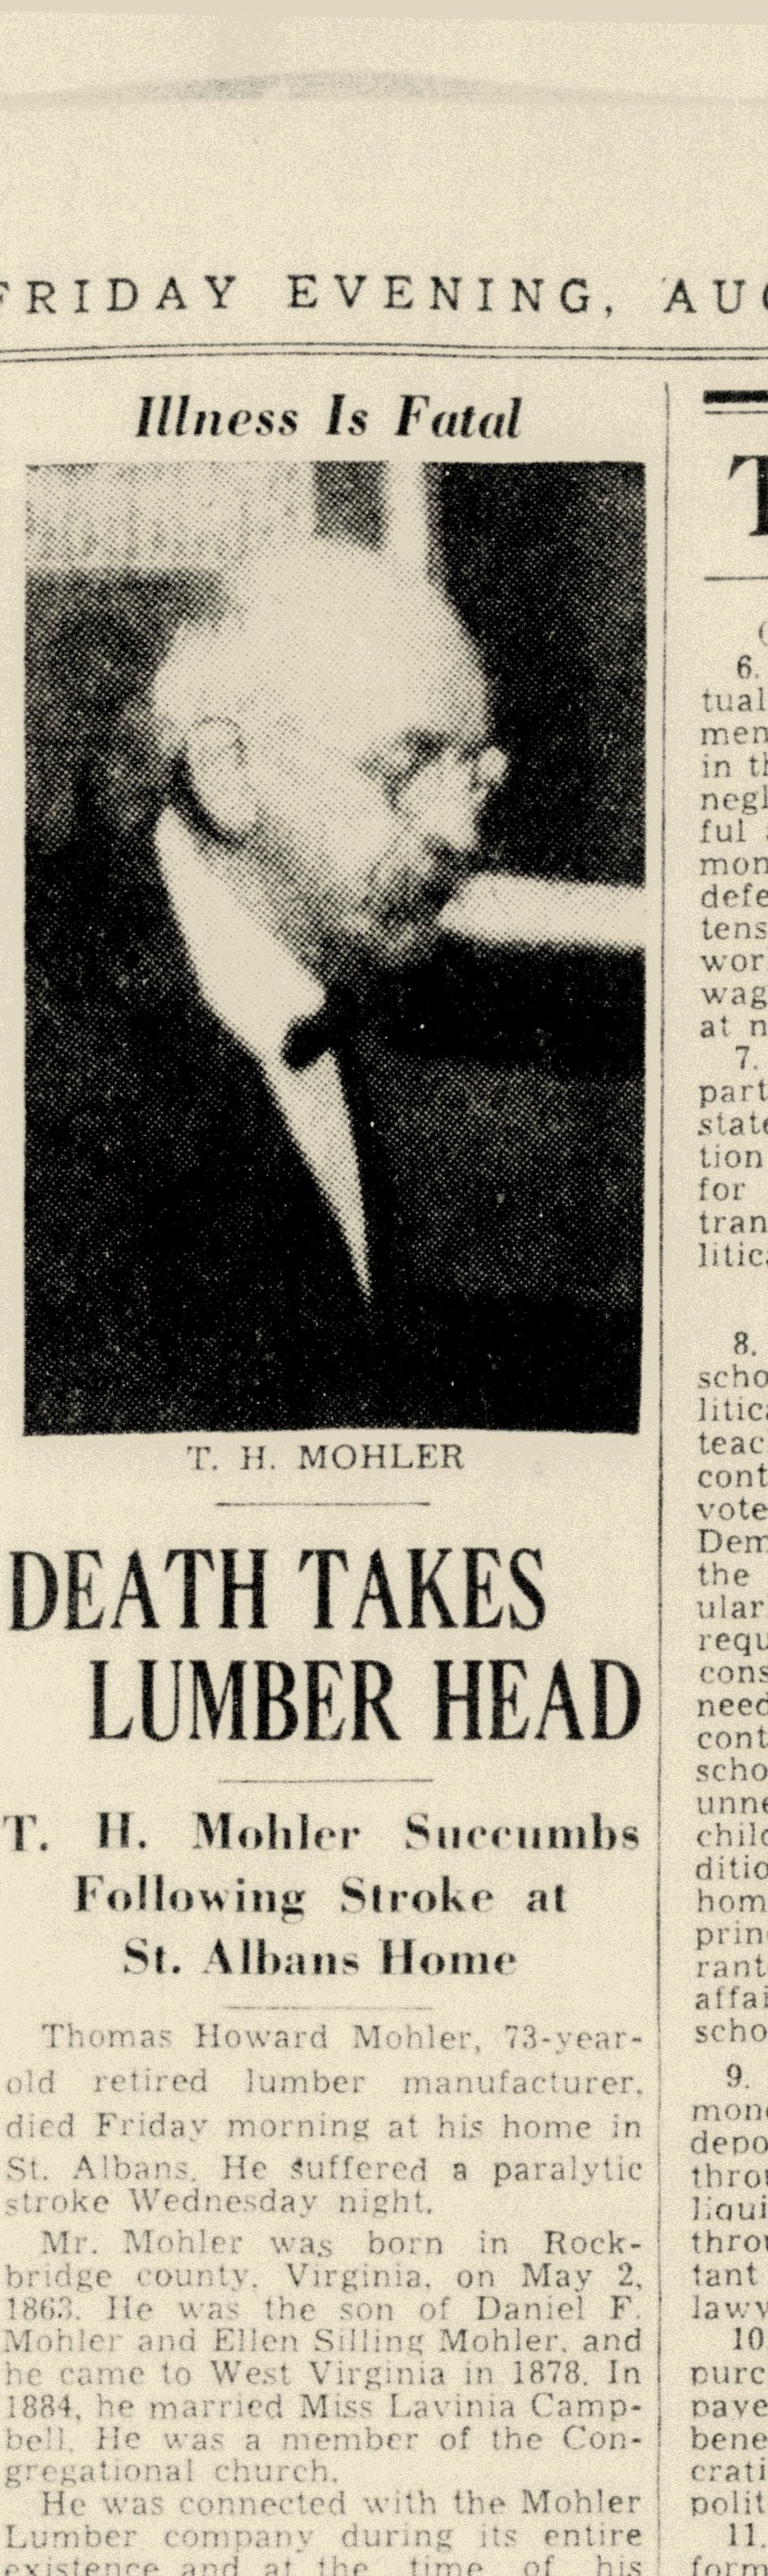 Mohler Obituary in Charleston Daily Mail